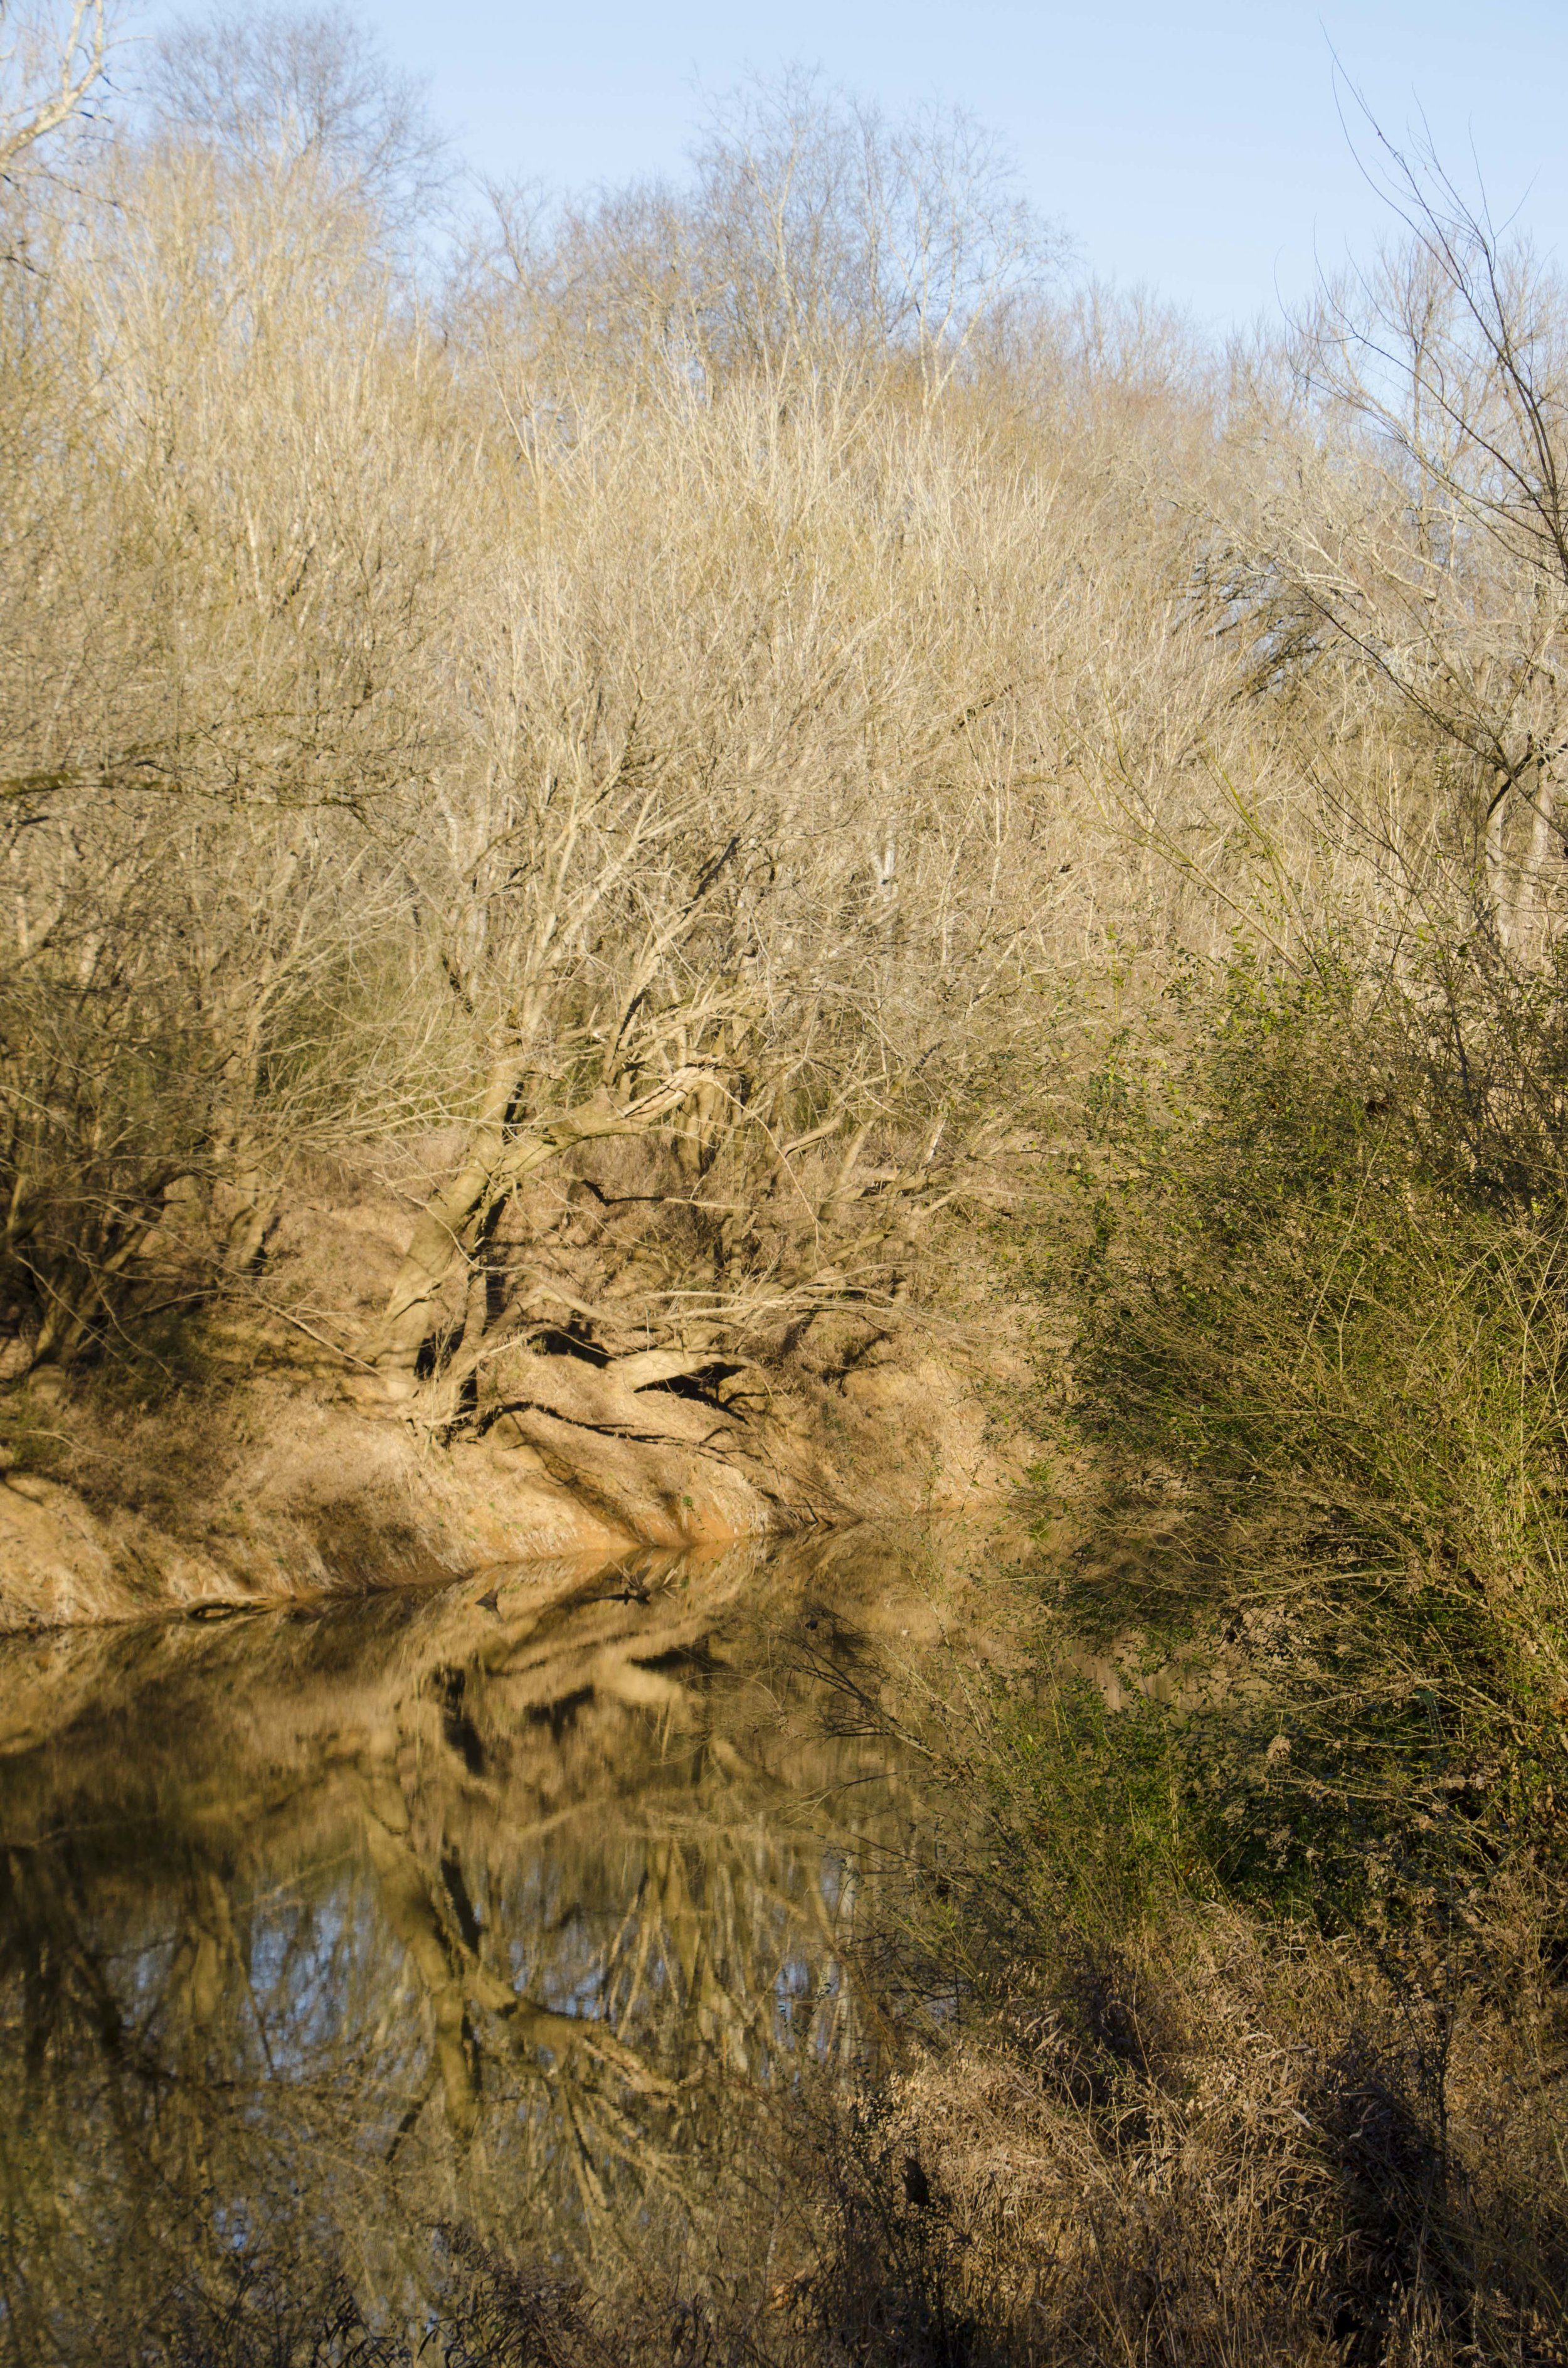 On the banks of the Creek, this odd reflection in the water put me in mind of two alligators sliding down the bank. (SCDNR photo by D. Lucas)